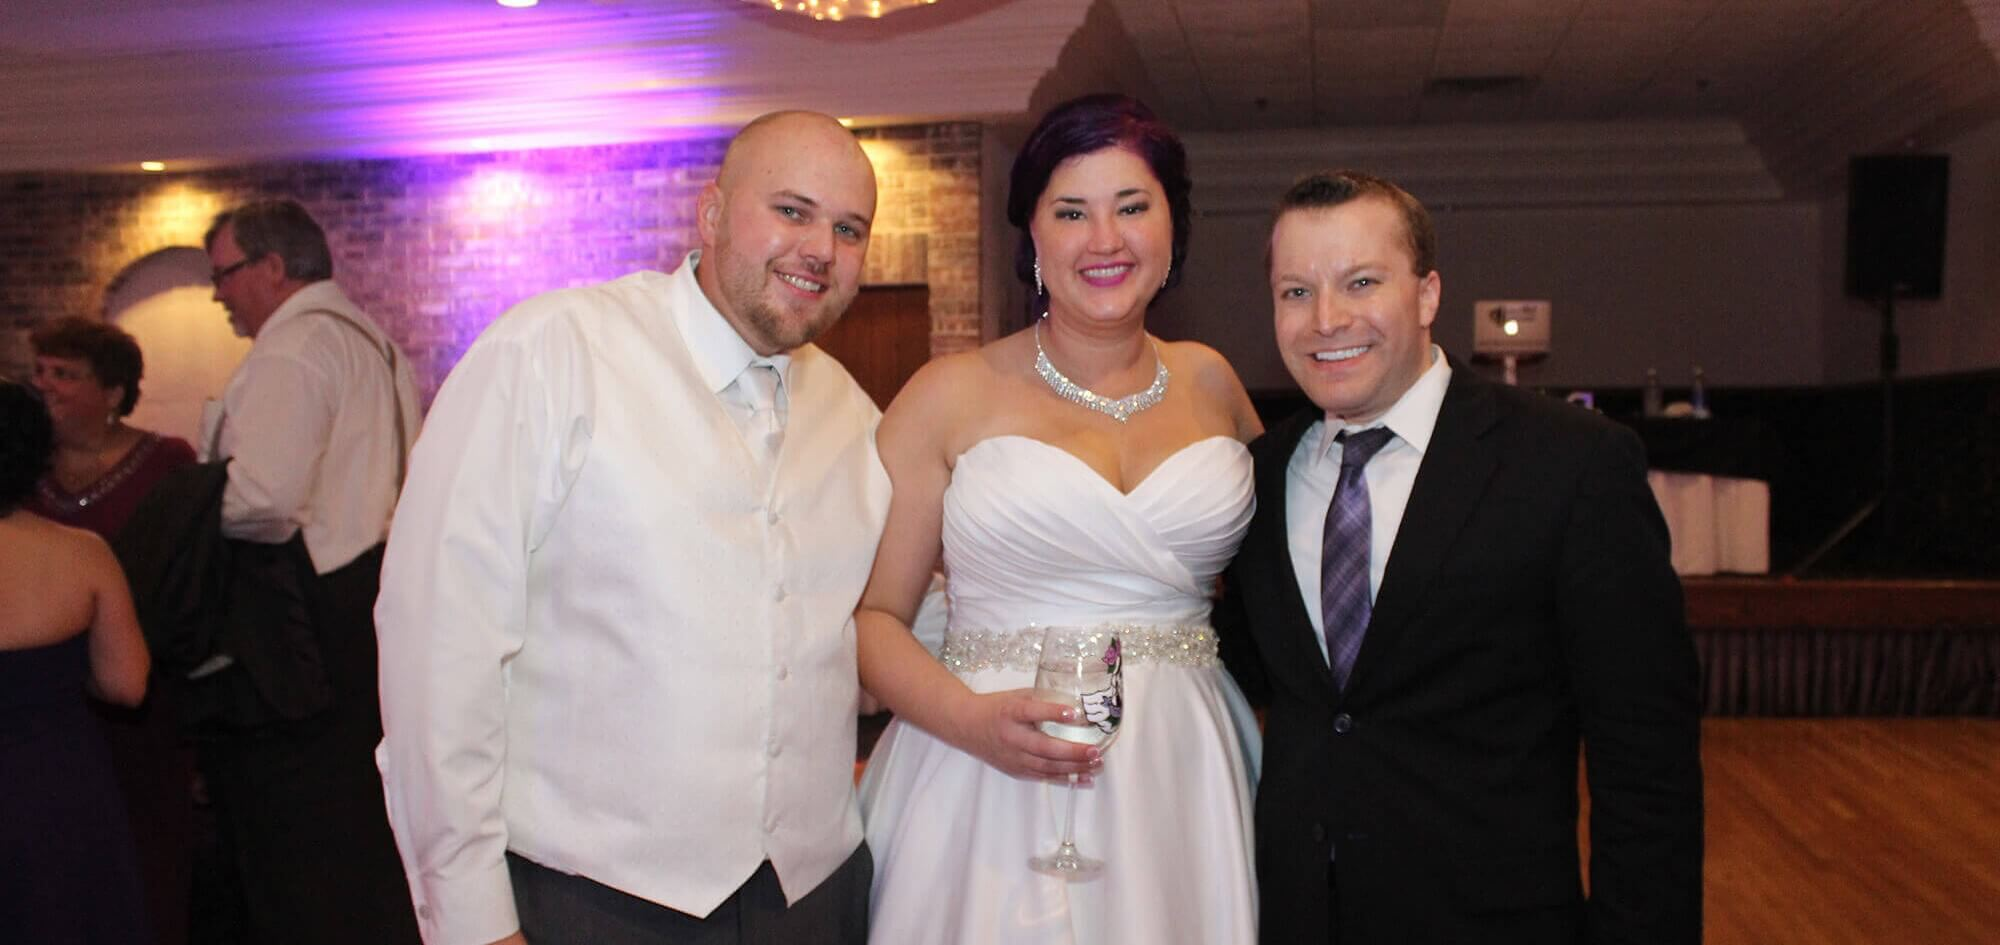 Royalty West Banquet Willow Springs Wedding DJ with Couple